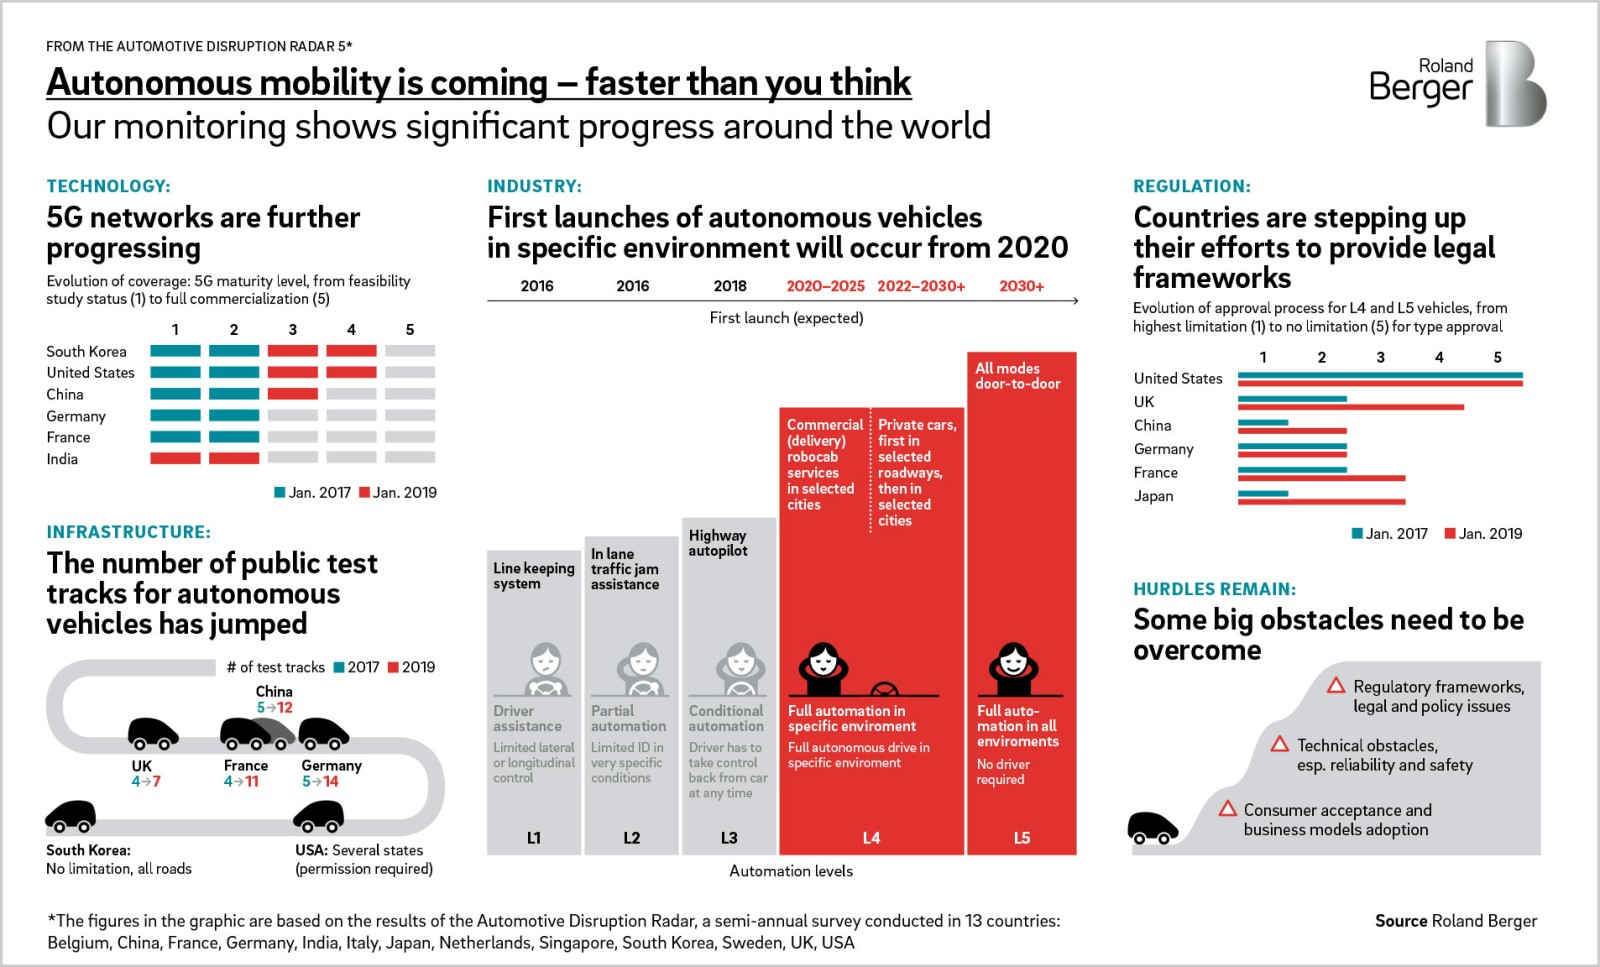 ADR5: Autonomous mobility is coming – faster than you think